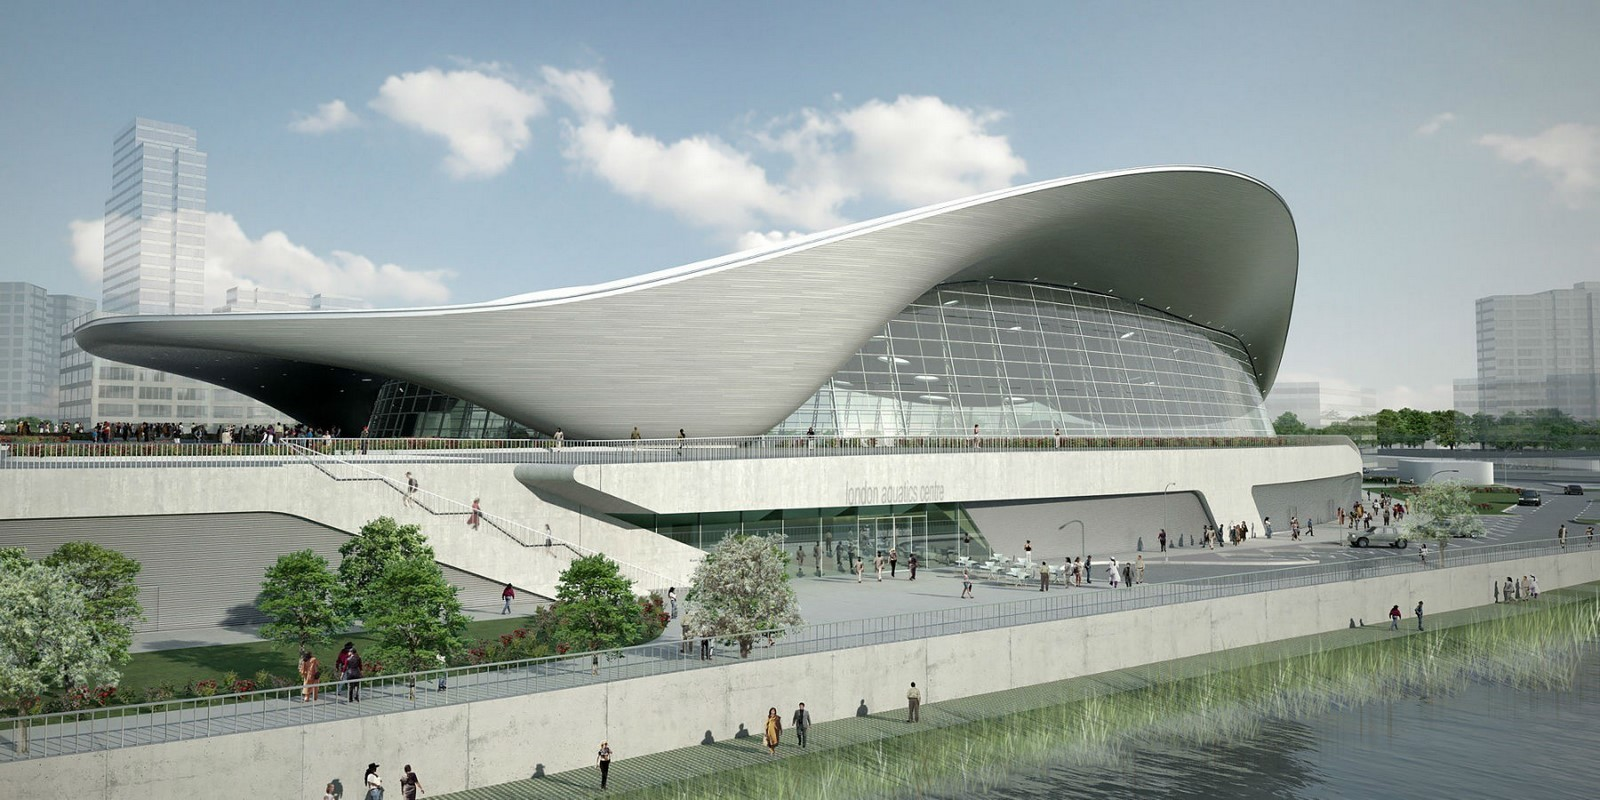 London Aquatics Centre by Zaha Hadid Architects- Architecture inspired by water - Sheet4